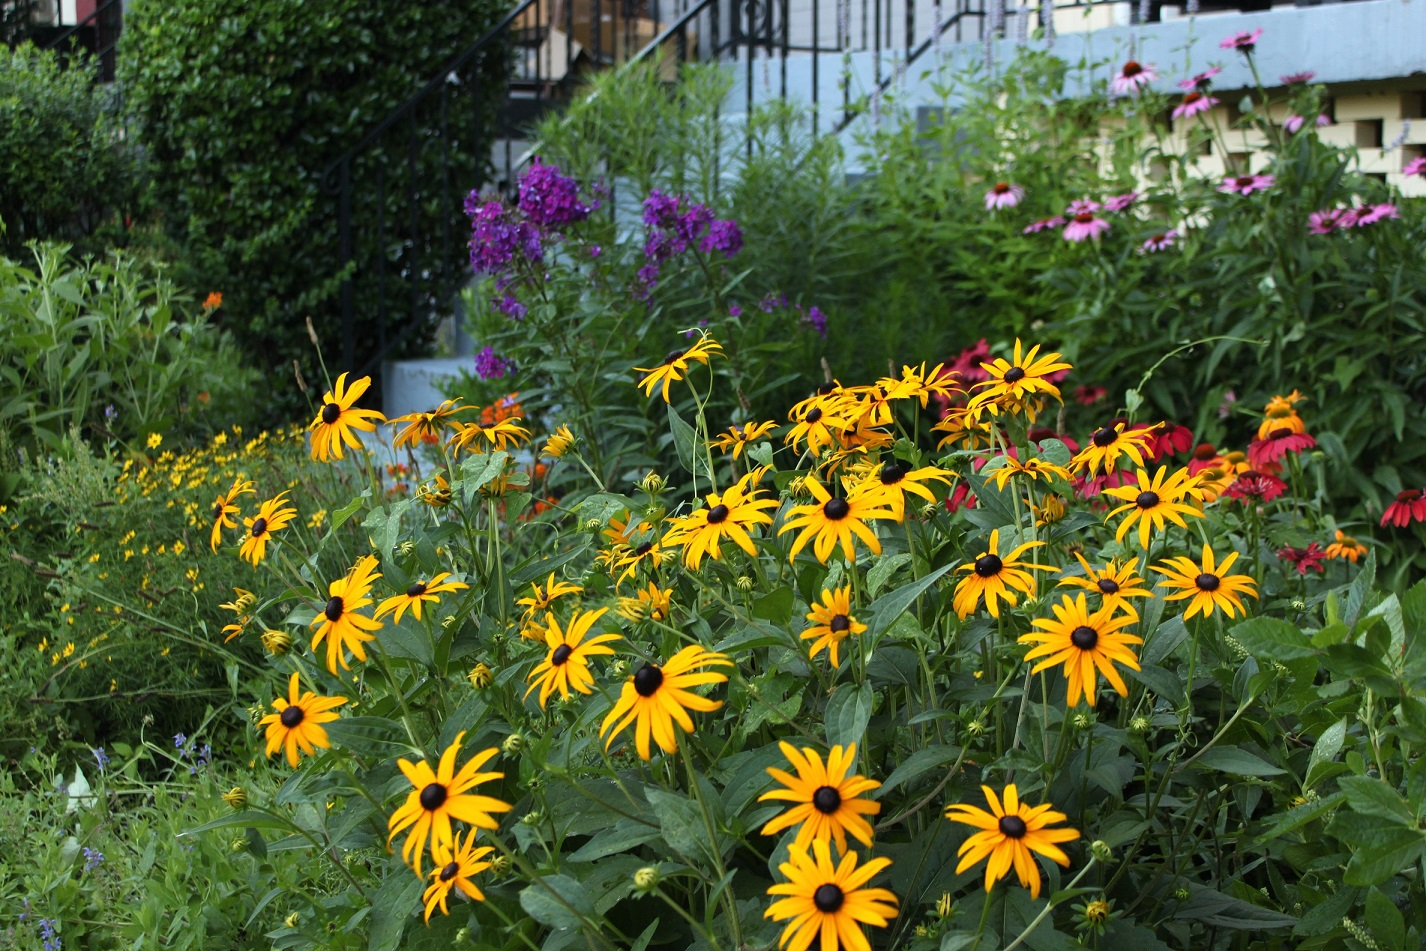 Black-eyed susans on 8th St. Garden Phlox, Coneflowers and Coreopsis in the background.